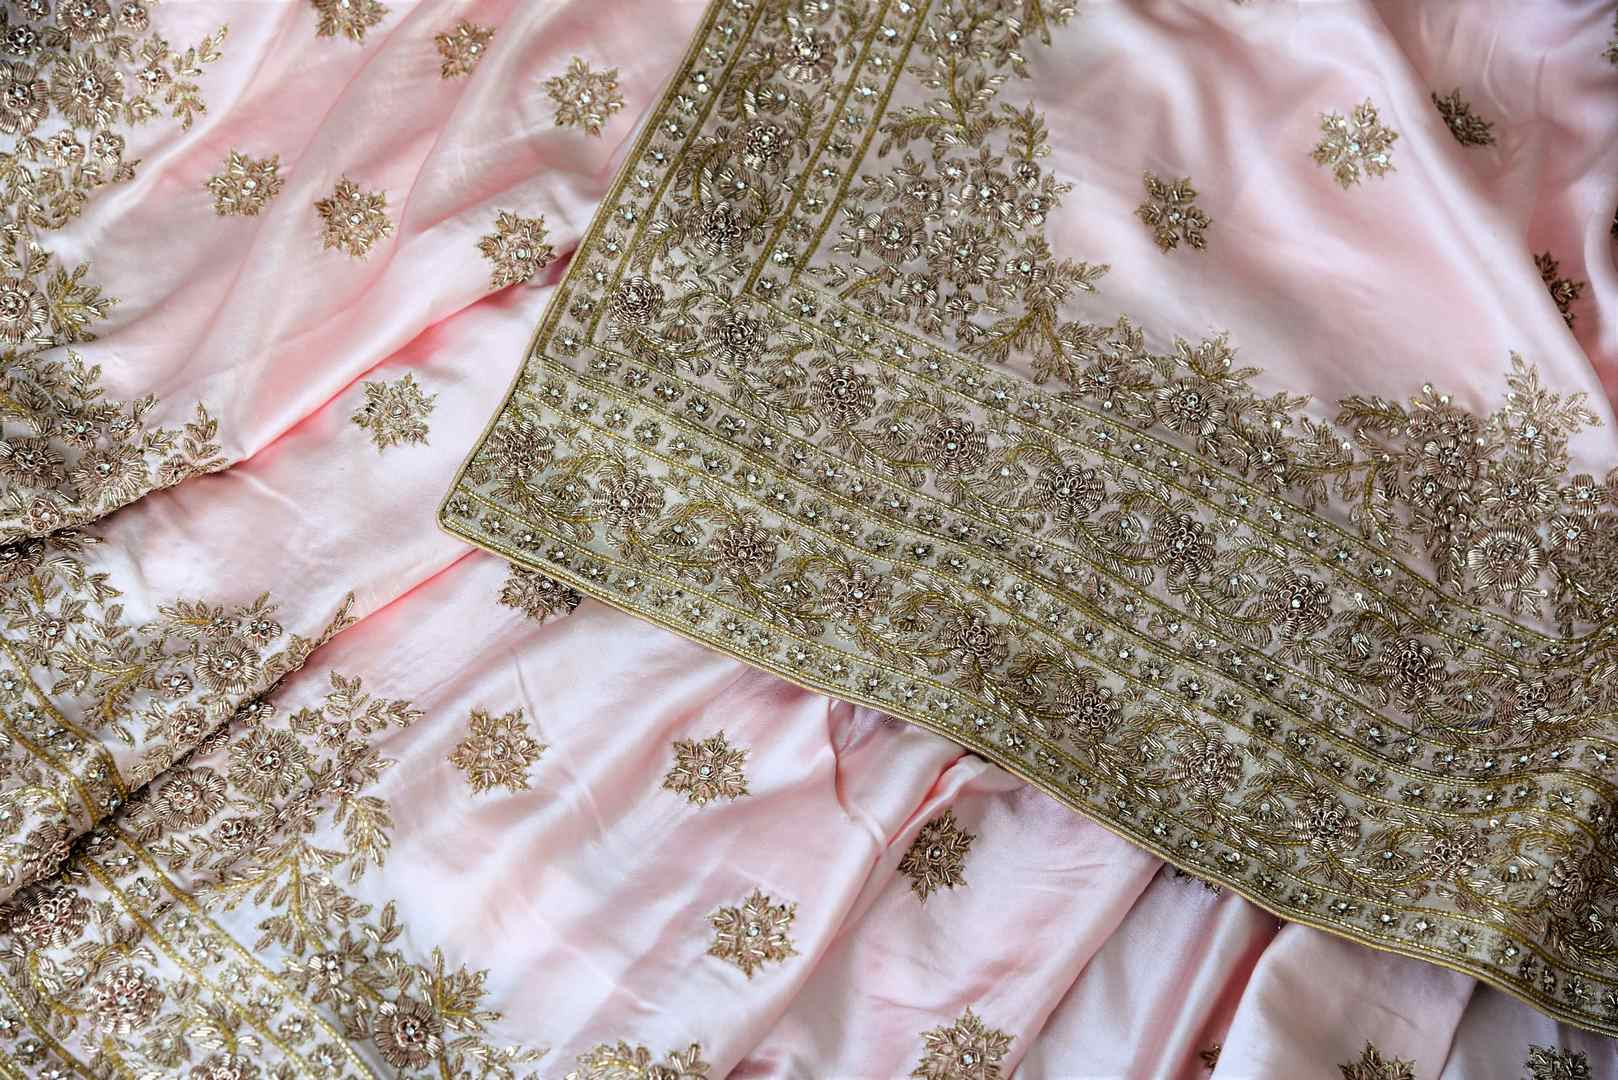 Beautiful peach hand zardozi embroidery crepe saree buy online in USA.  If you are looking for Indian designer wedding saris in USA, then Pure Elegance clothing store is your one-stop solution, shop now.-details